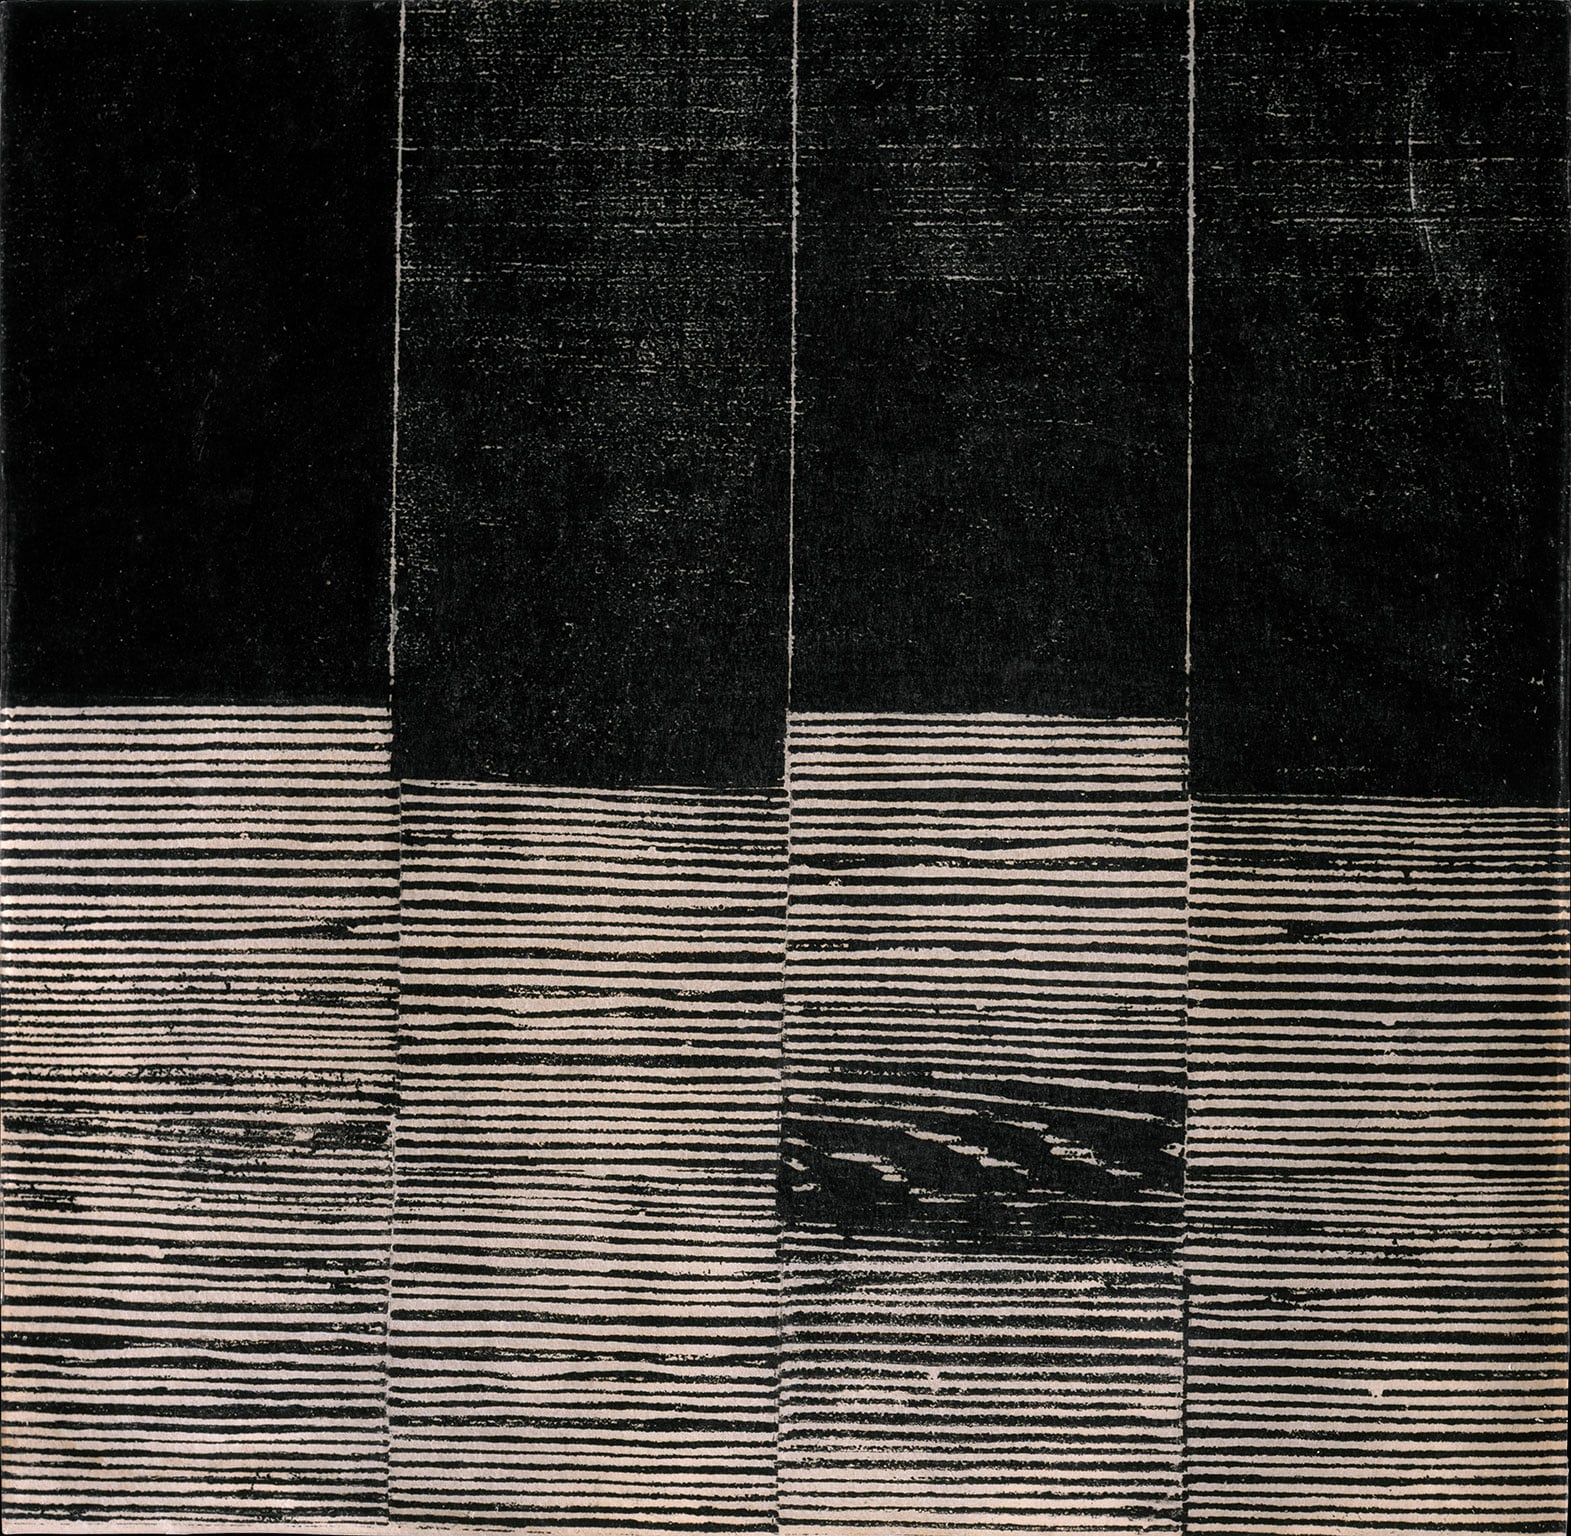 Lygia Pape, Untitled (from the series Weaving), 1959